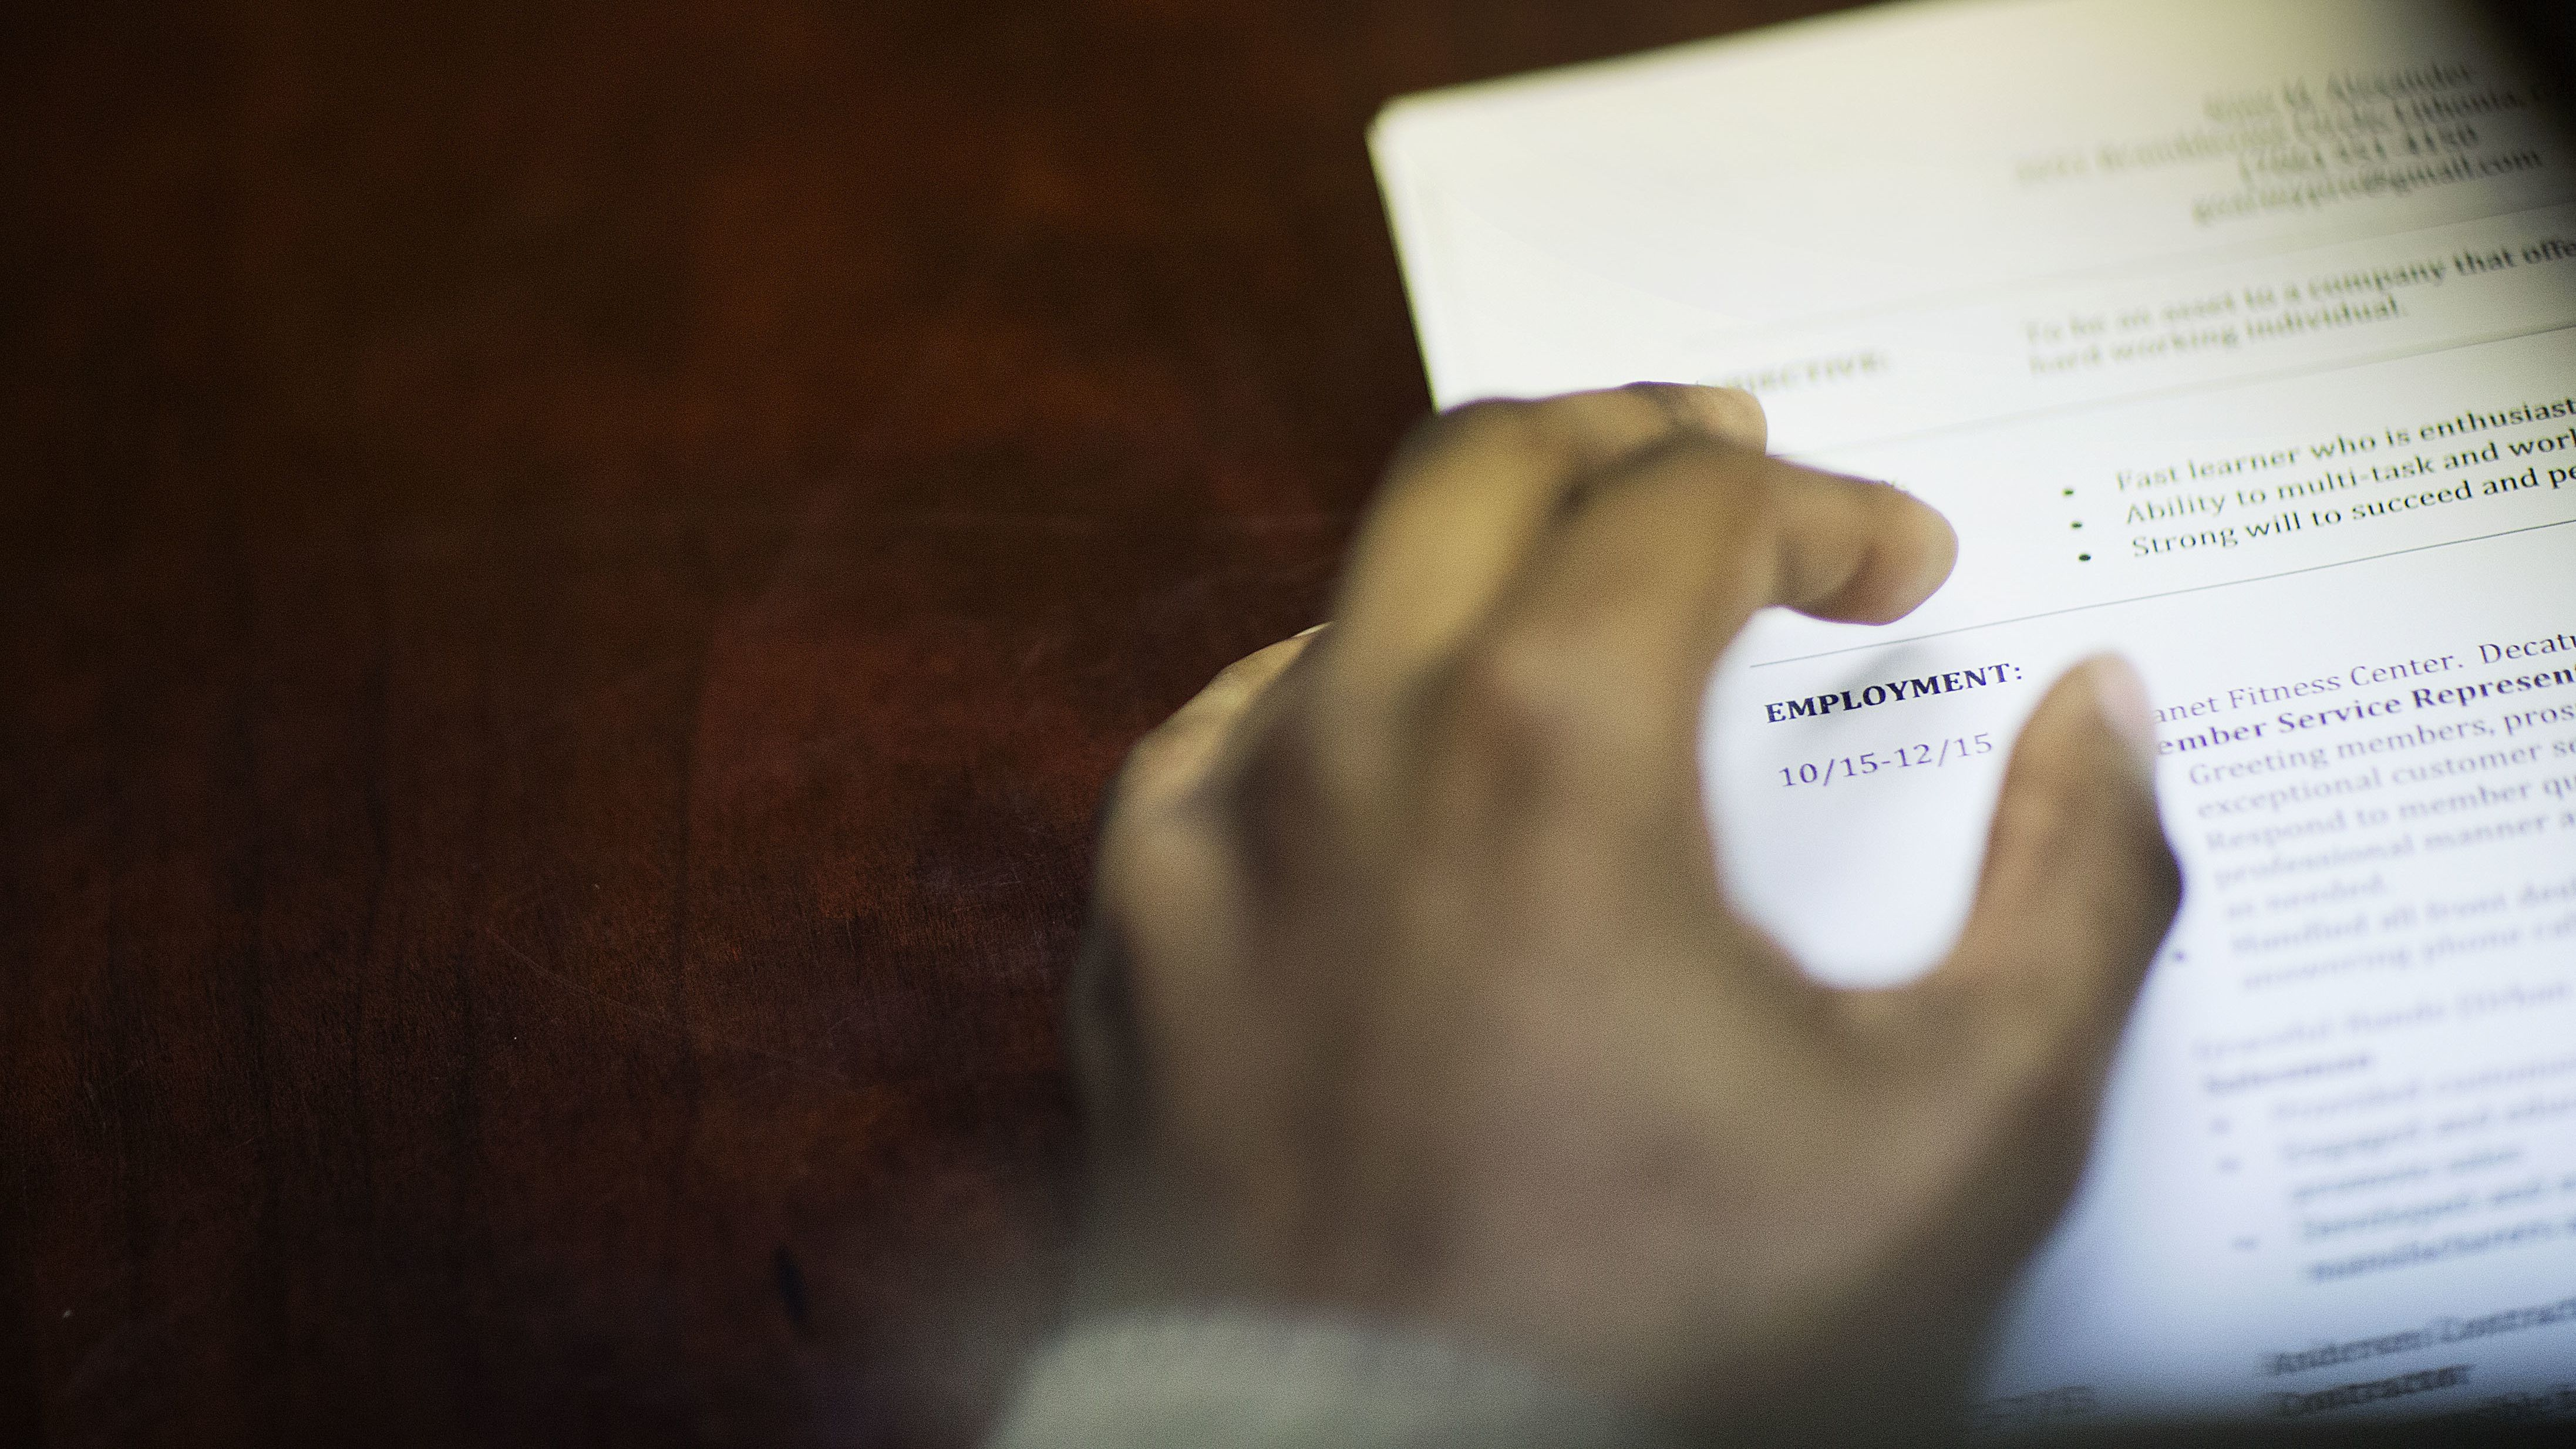 In this Thursday, March 3, 2016, file photo, a job candidate's resume sits on a table as he interviews for a job during a recruiting event at the Georgia Department of Labor office in Atlanta. Doubts deepened about the economy's health on Friday, June 3, 2016, when the government reported that hiring slowed to a near-standstill in May. While unemployment slid from 5 percent to 4.7 percent, the lowest since November 2007, the rate fell for a troubling reason: Nearly a half-million jobless Americans stopped looking for work and so were no longer counted as unemployed. (AP Photo/David Goldman, File)